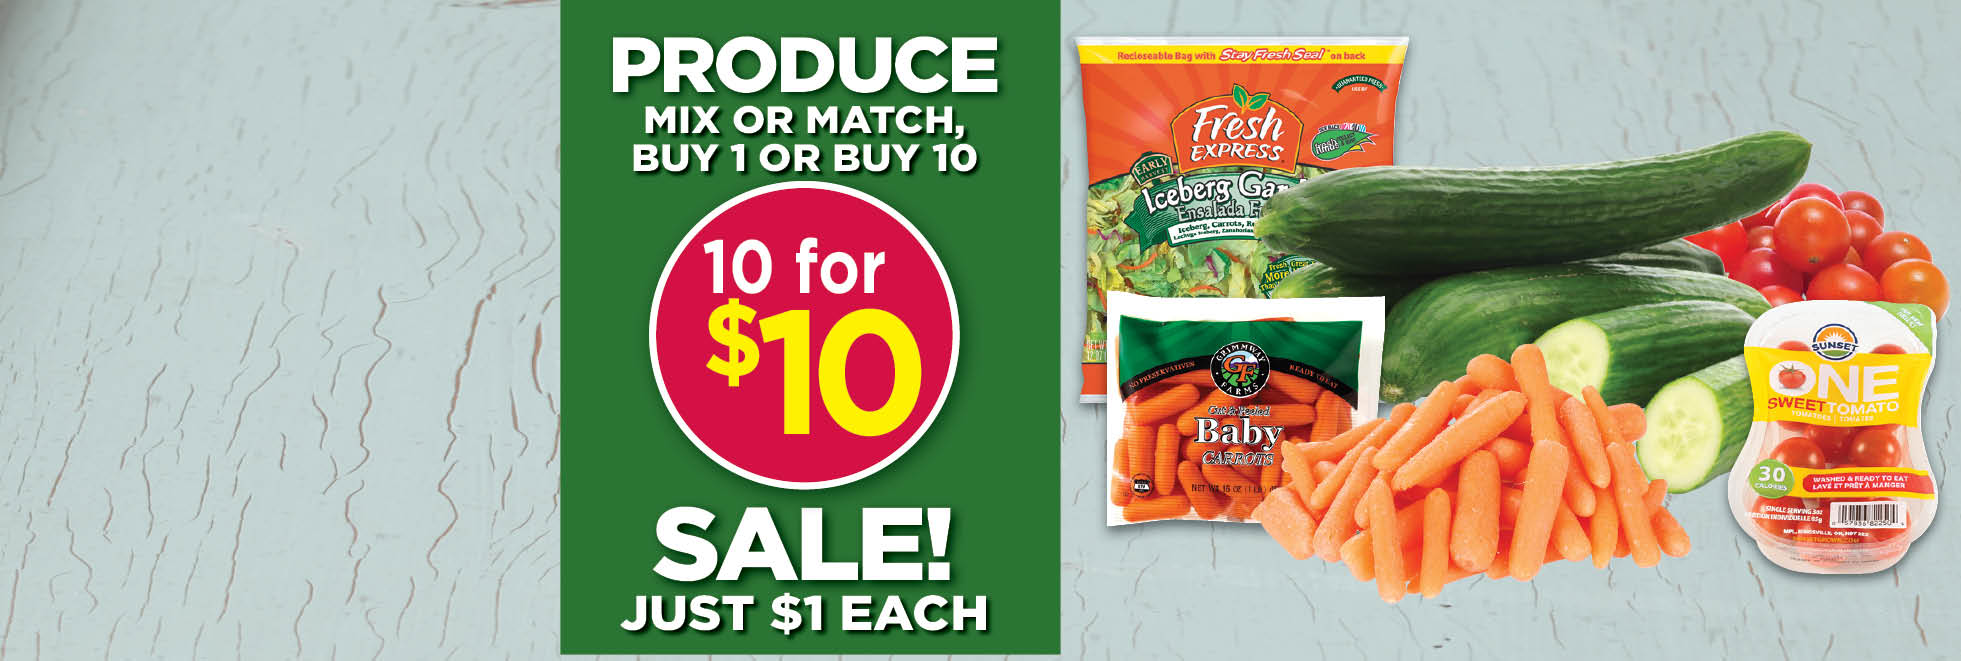 Major Produce Savings